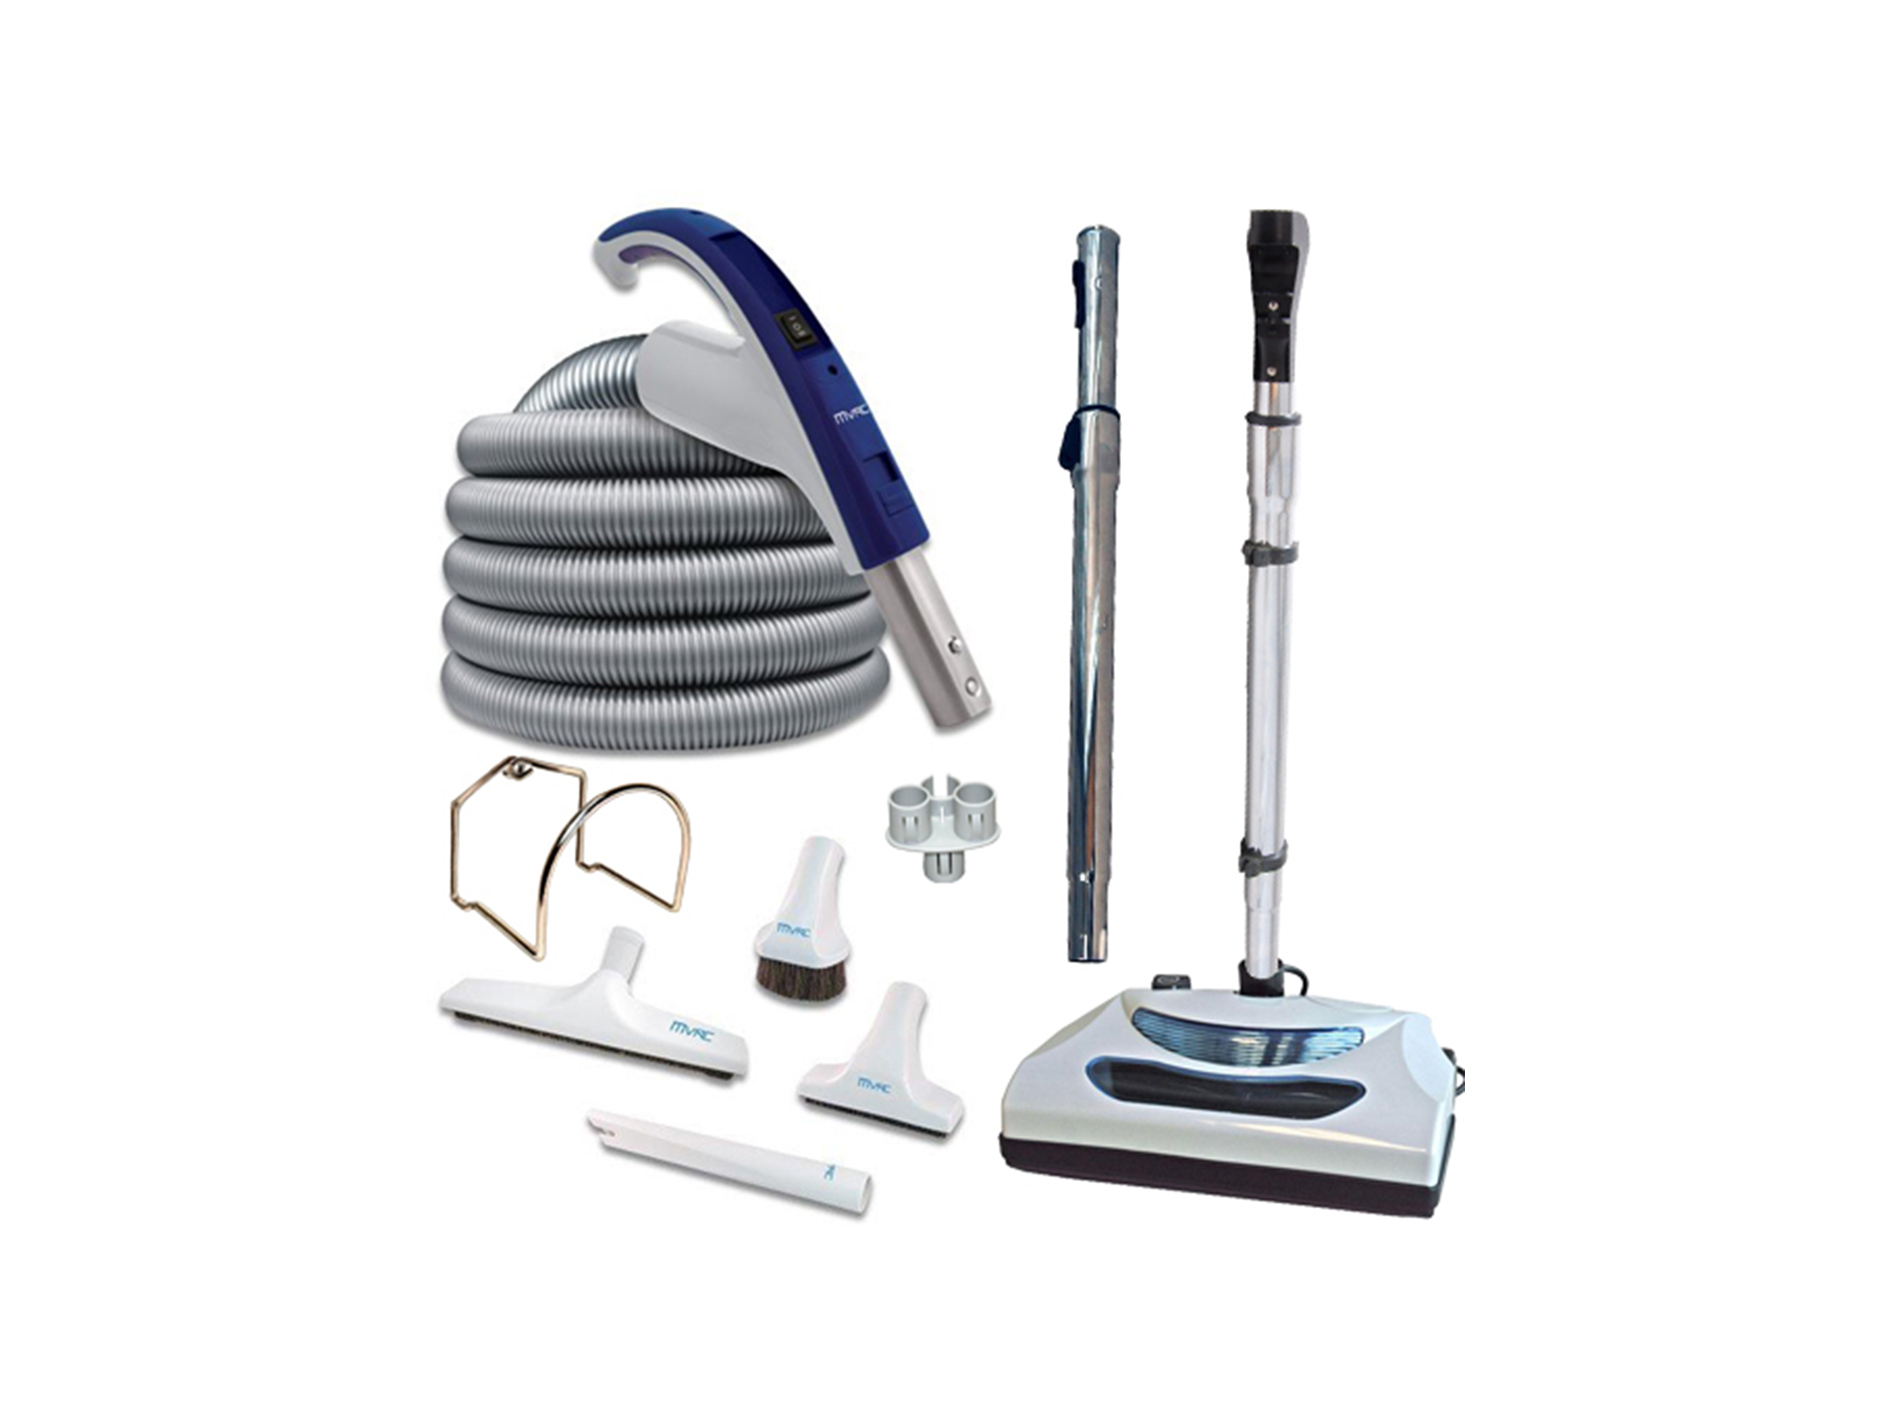 Mvac Carpet And Bare Floor Cleaning Kit Cardy Vacuum